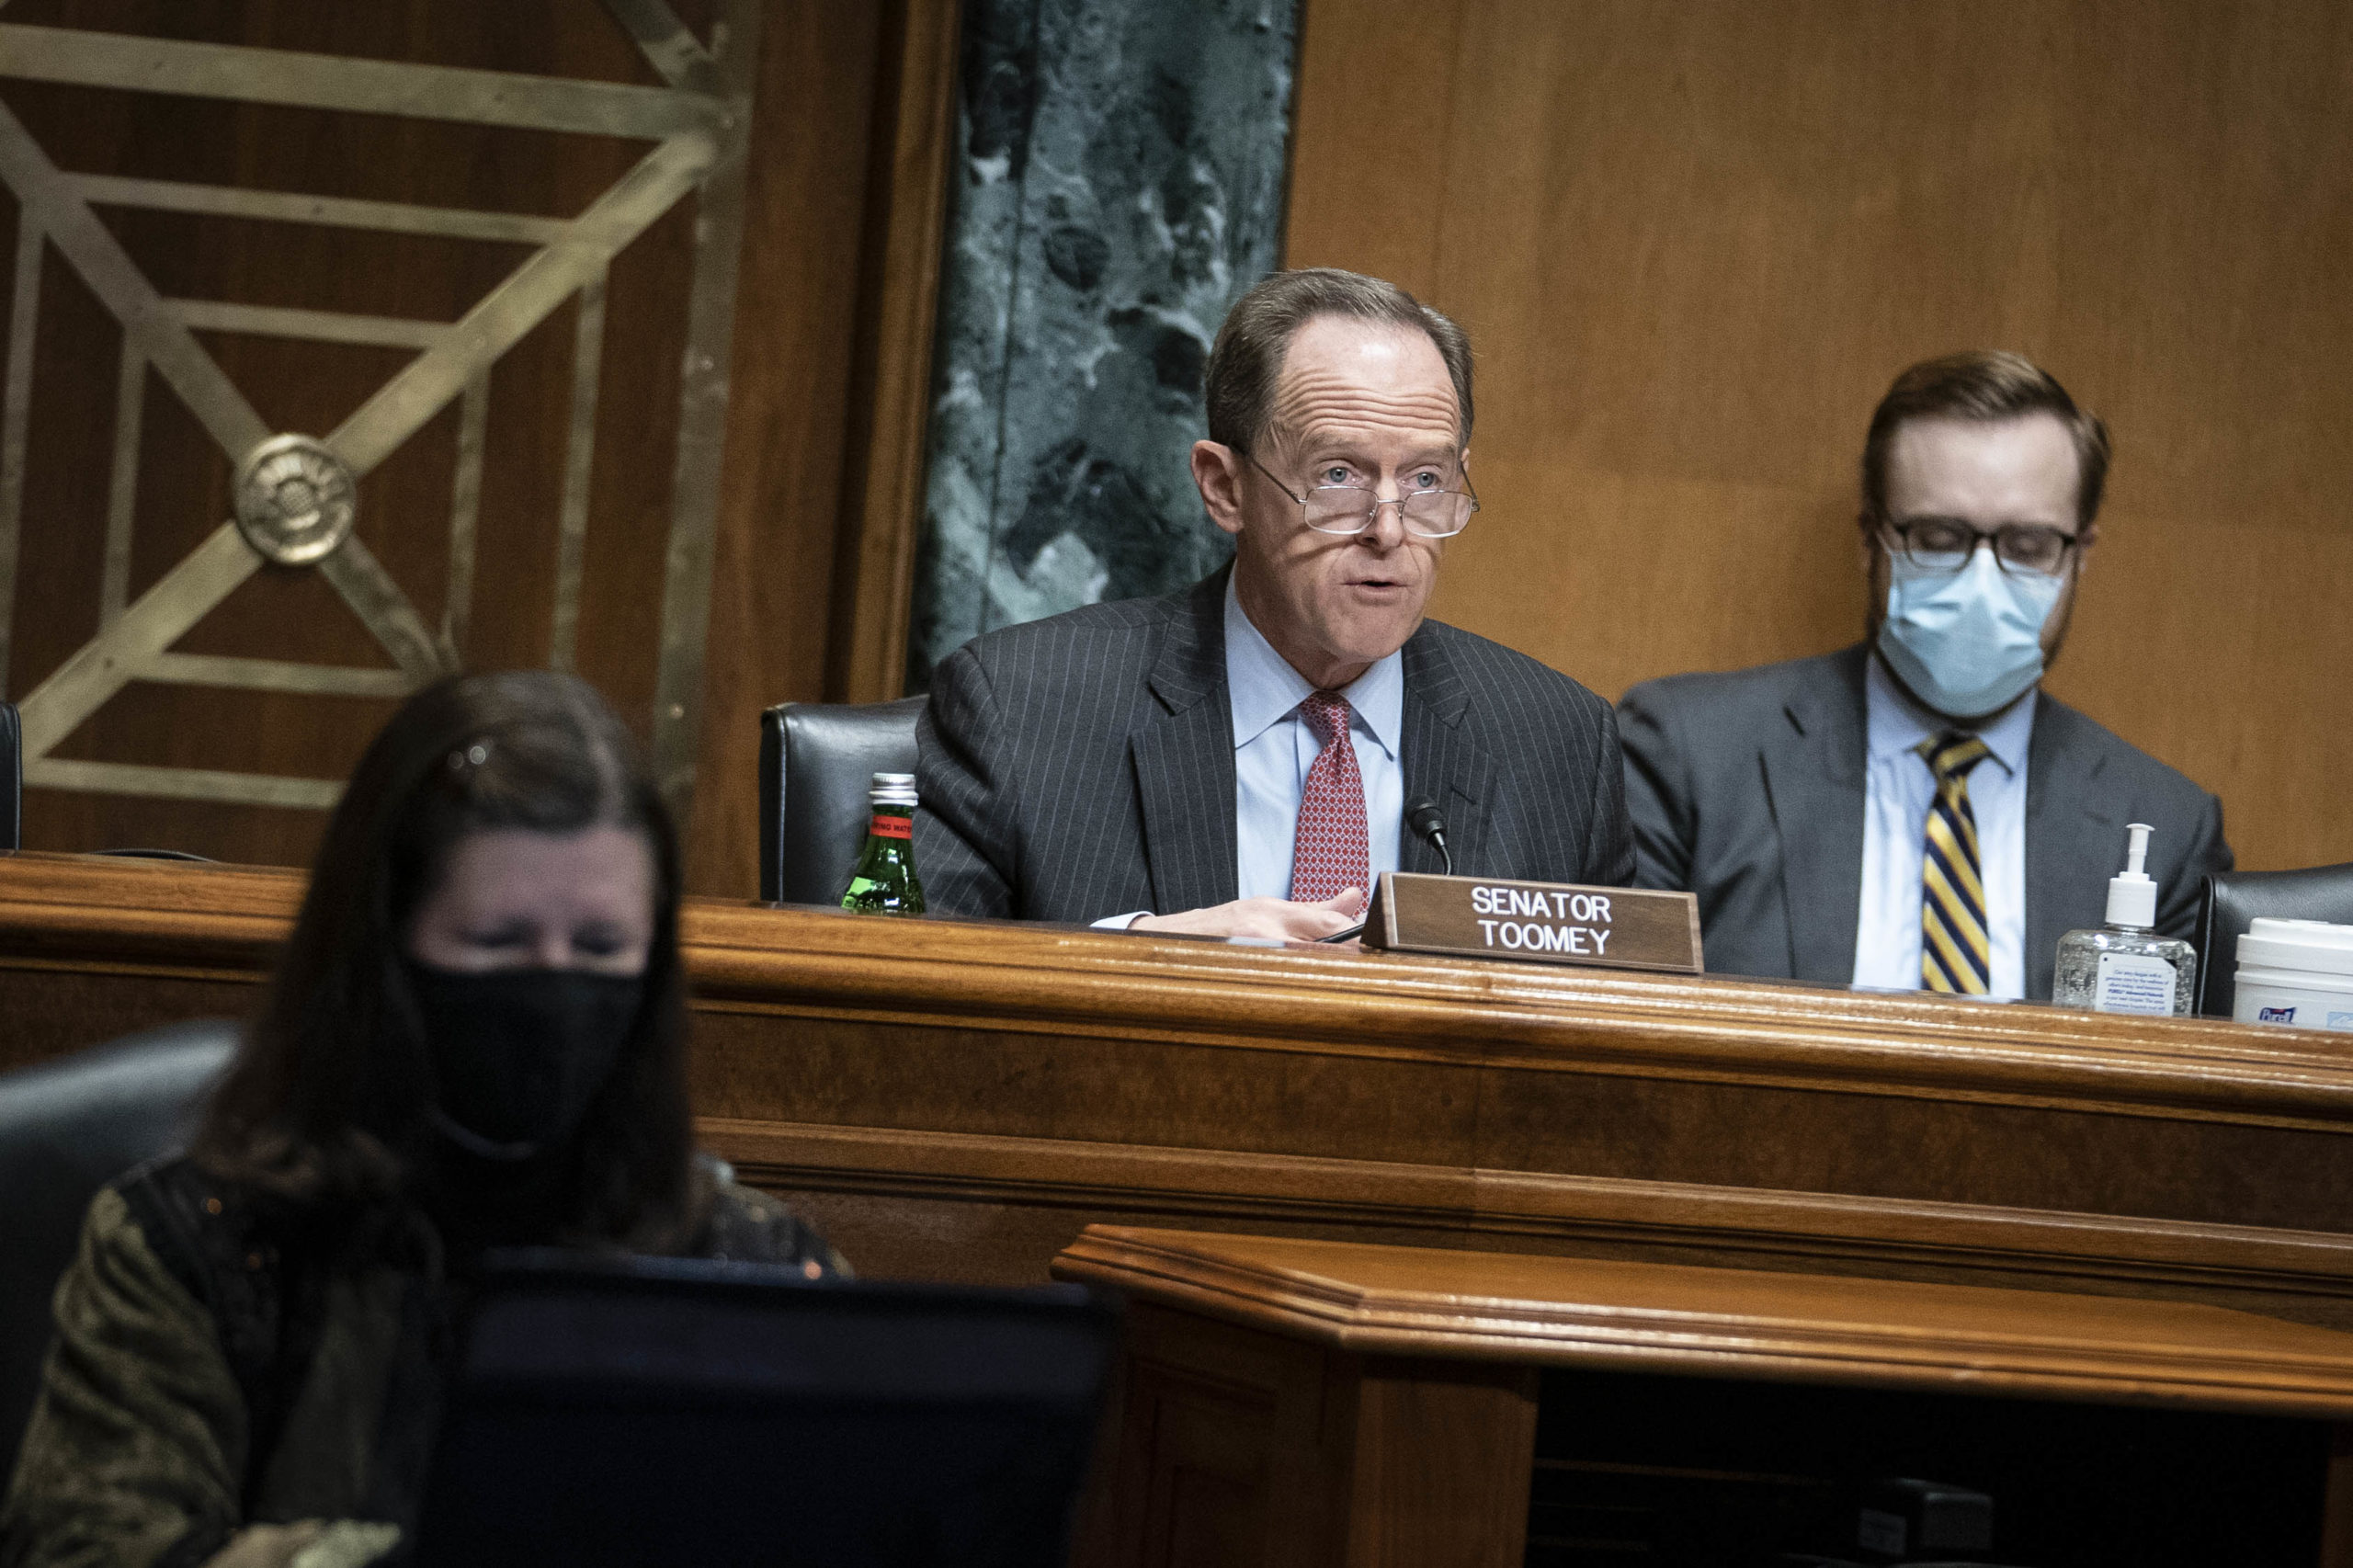 Sen. Pat Toomeyspeaks during a hearing on Dec. 10. (Sarah Silbiger/Pool/Getty Images)